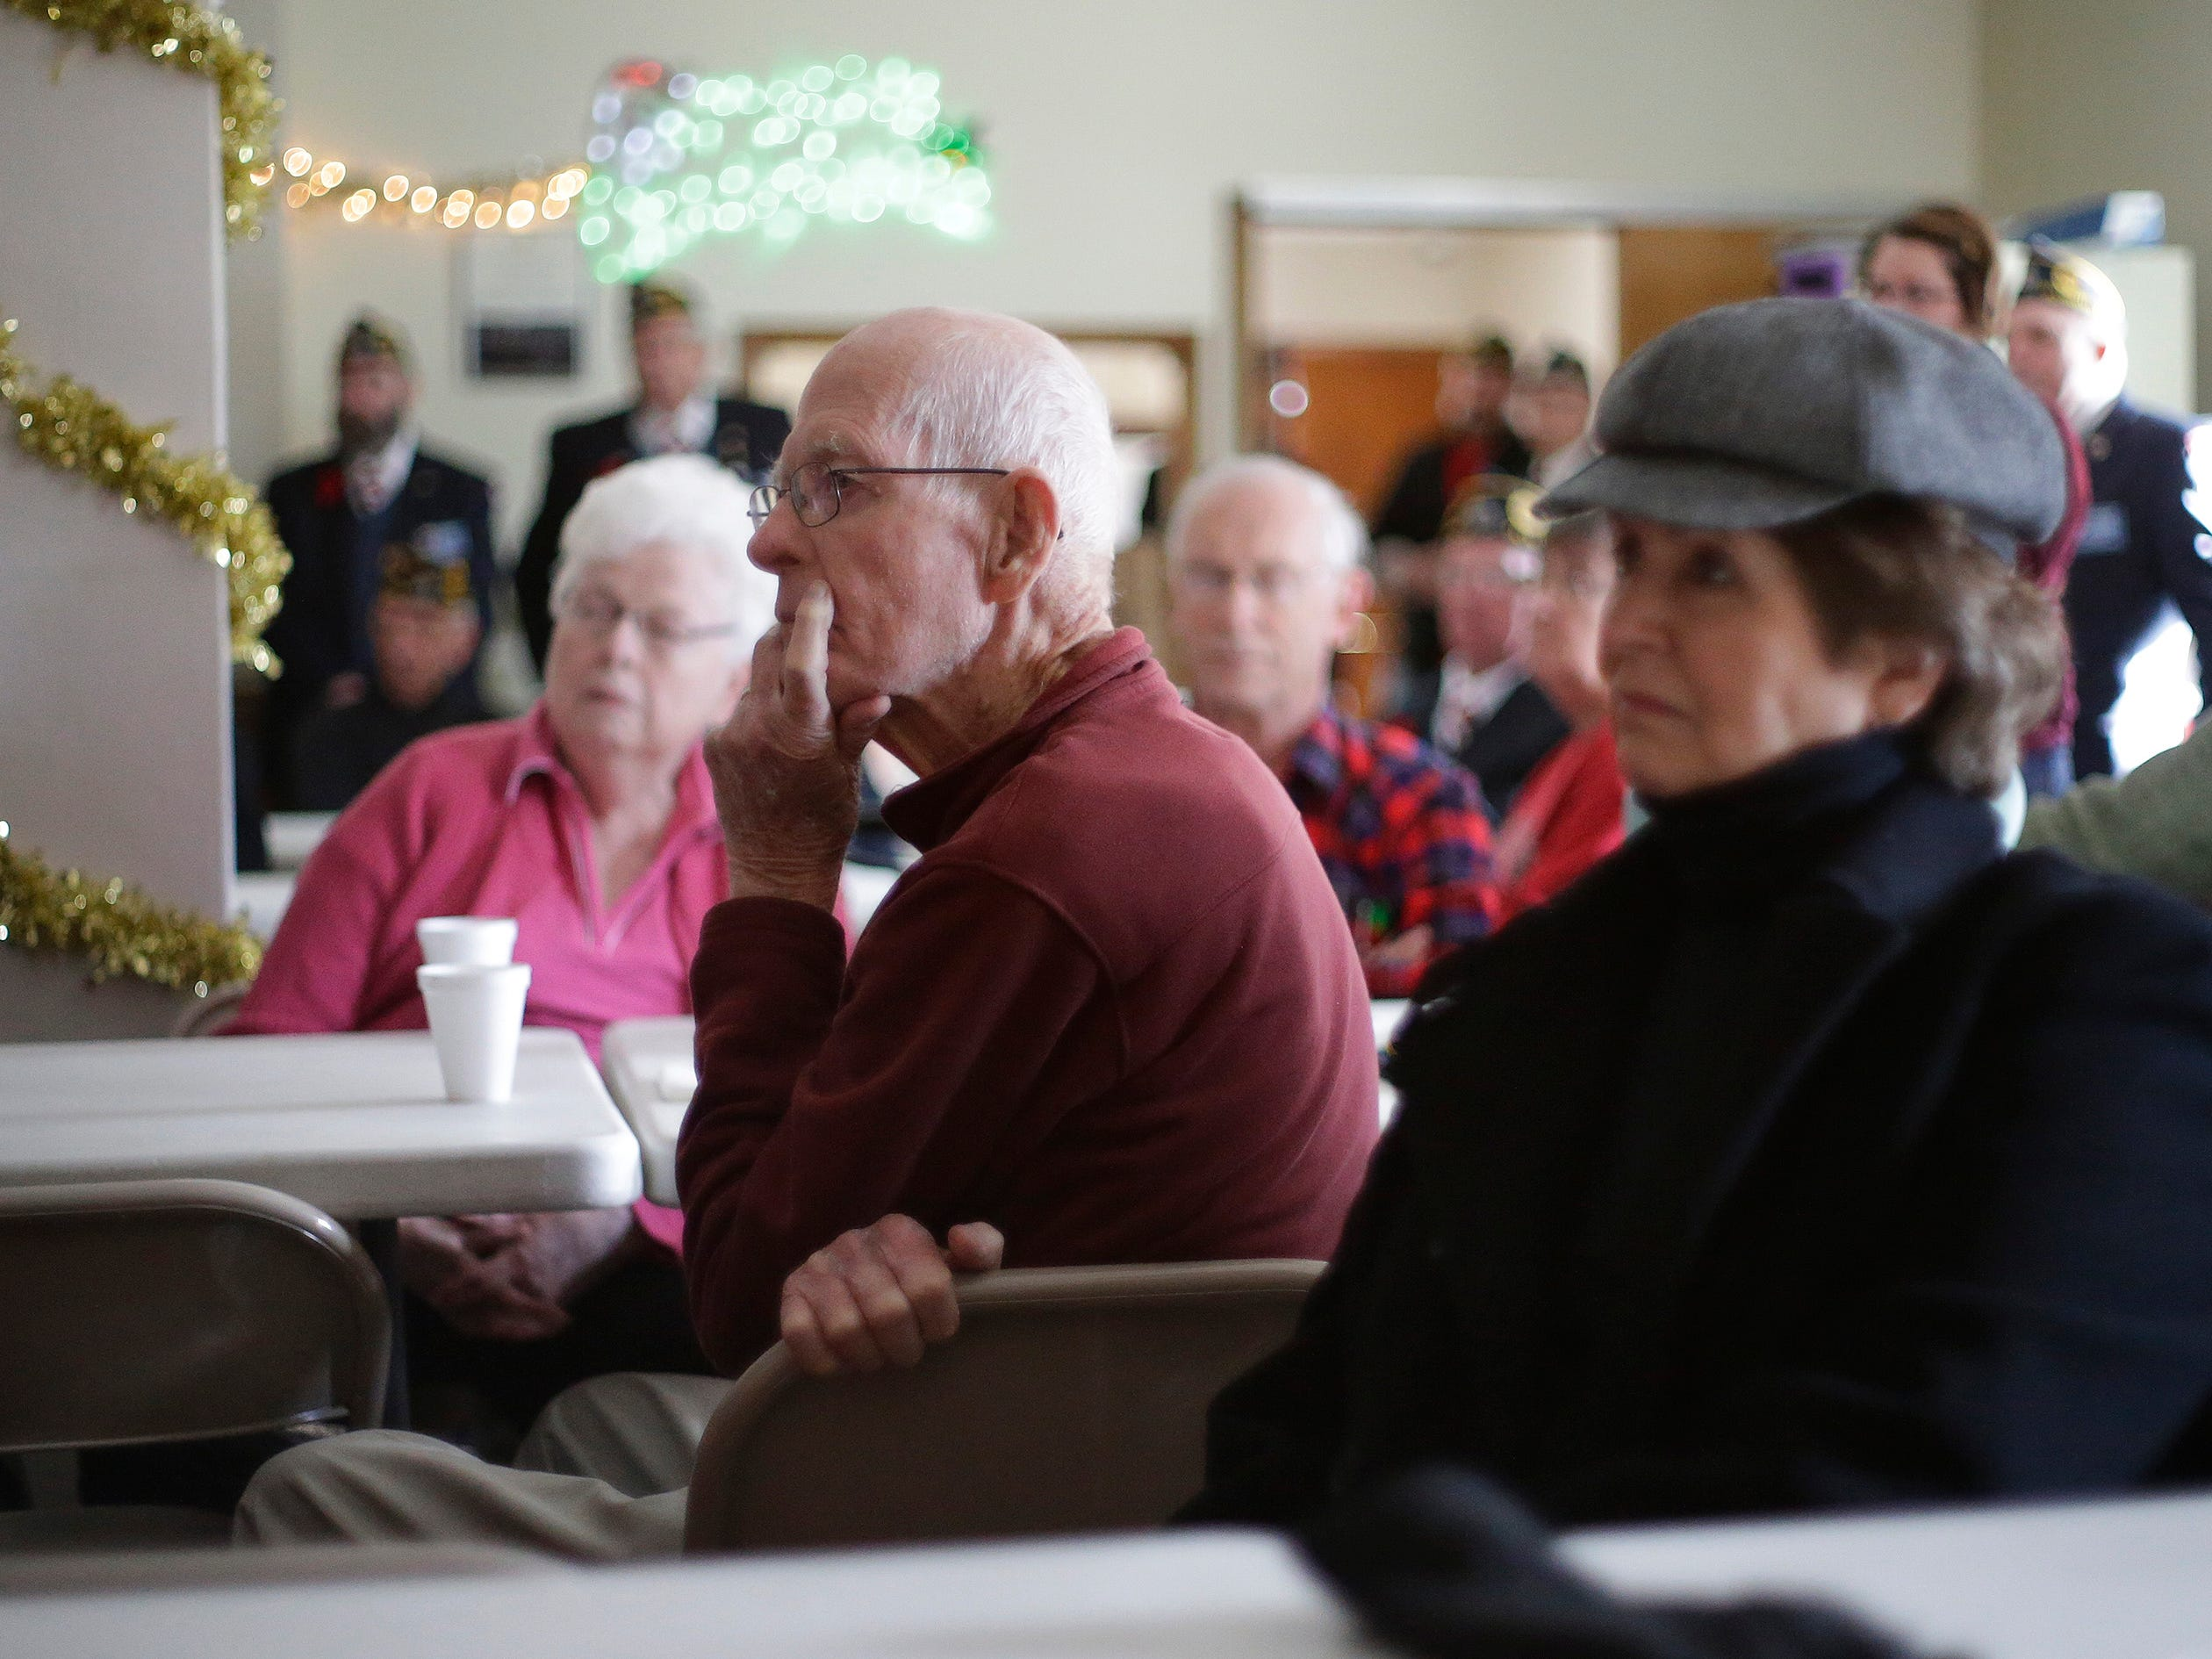 People listen and watch a DVD about Pearl Harbor at American Legion Post 243, Friday, December 7, 2018, in Plymouth, Wis.